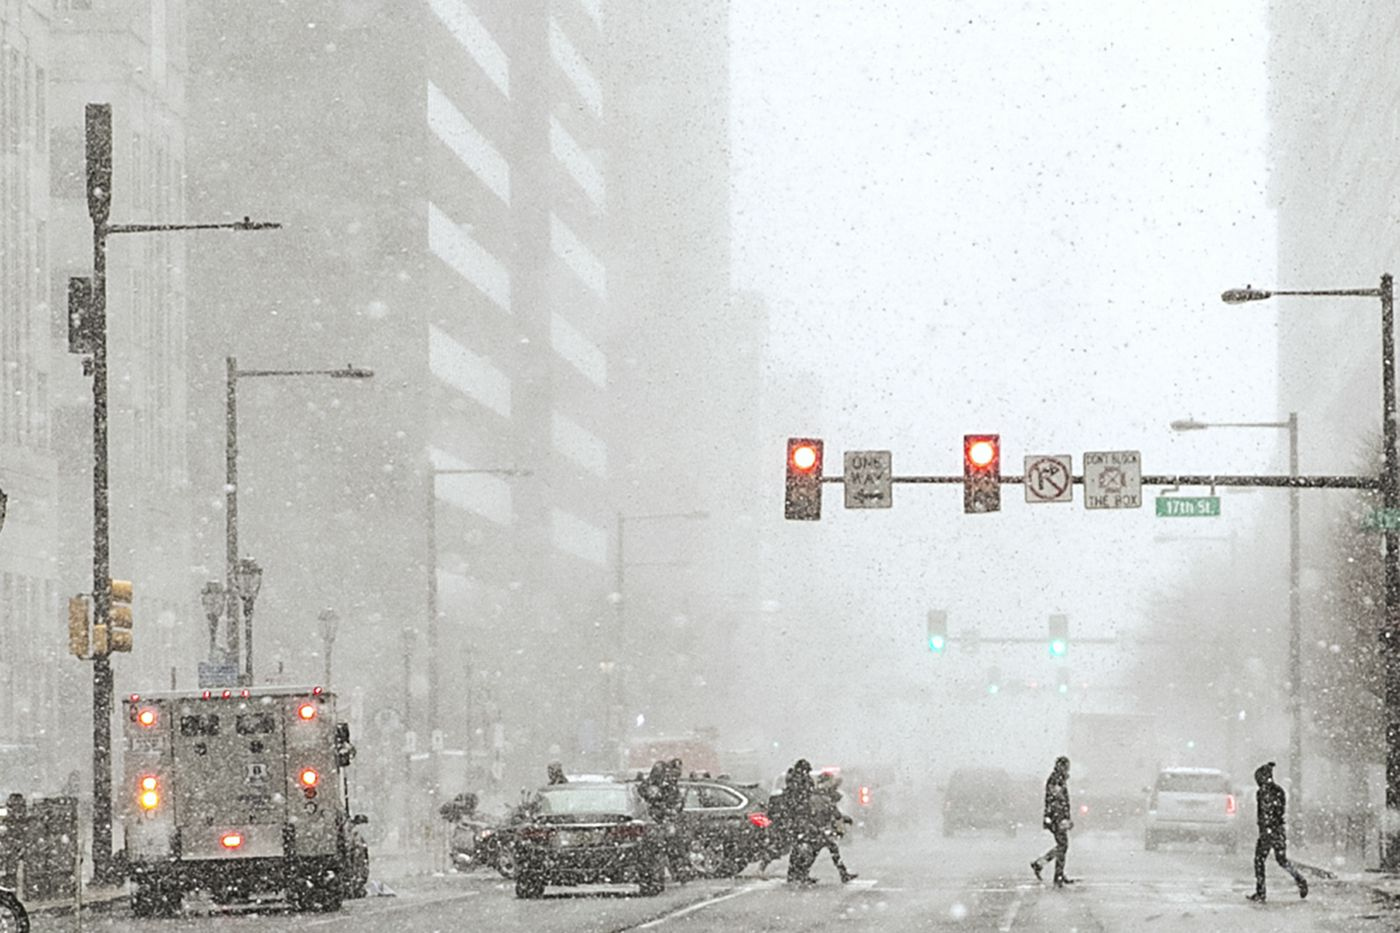 Snow Squall Hits Philadelphia On Wednesday Afternoon